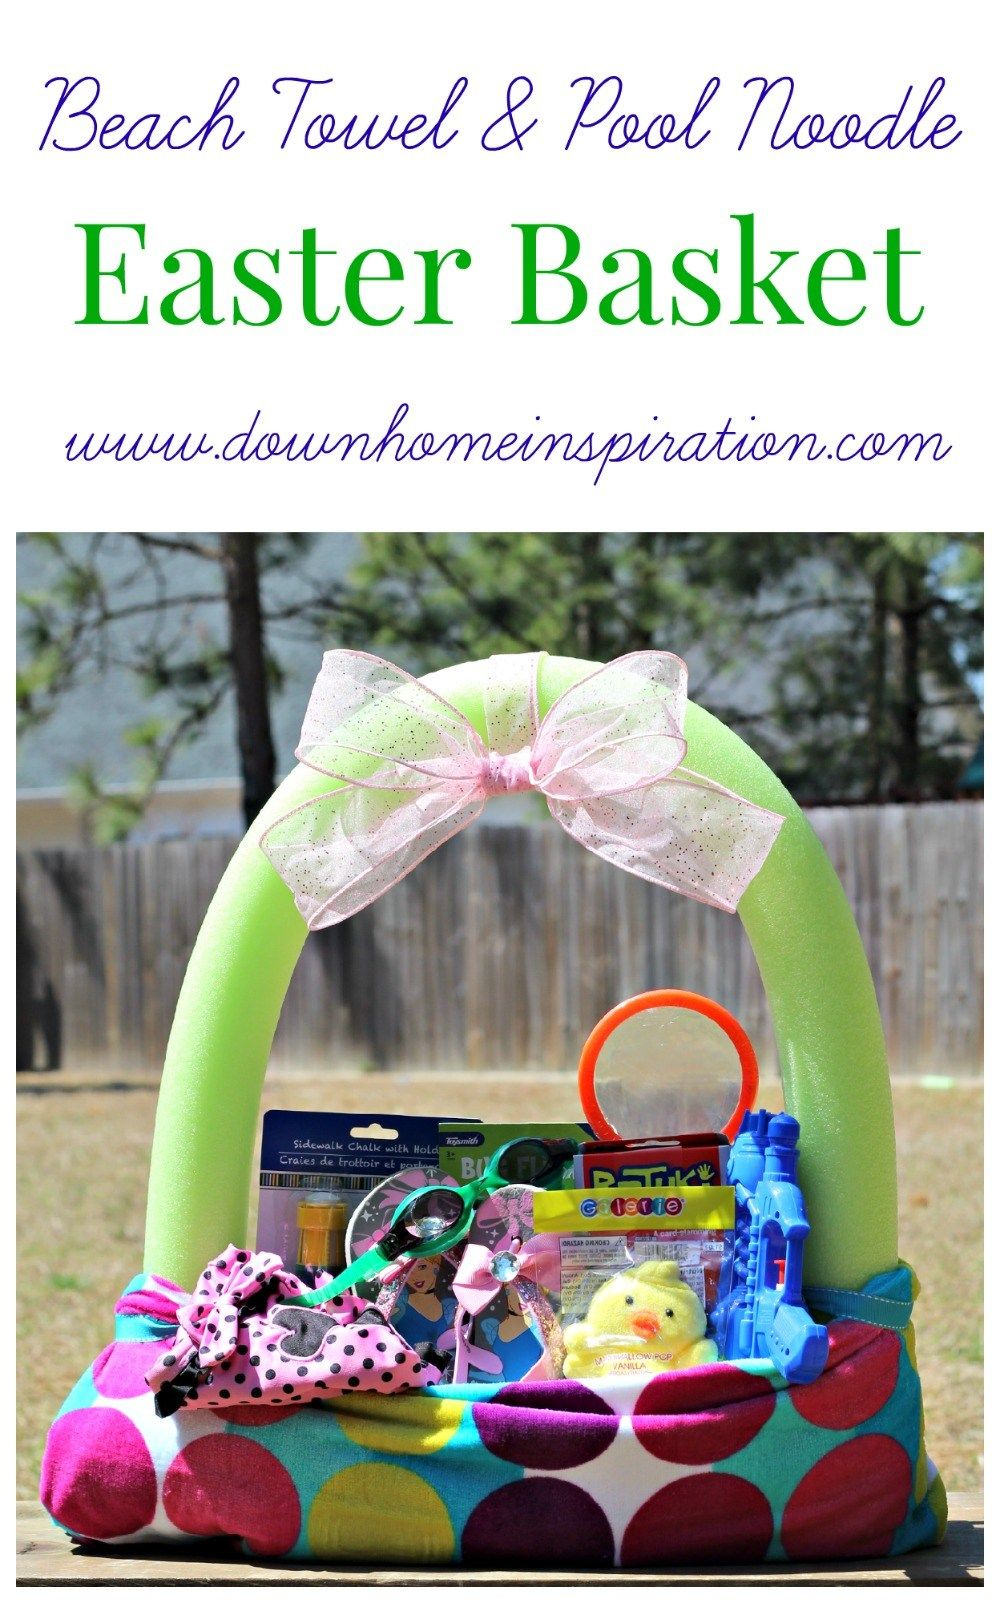 Beach towel pool noodle easter basket 3 easter pinterest easter baskets are such a fun tradition and we love how in recent years people have found more and more creative ideas for candy alternatives to put in negle Image collections